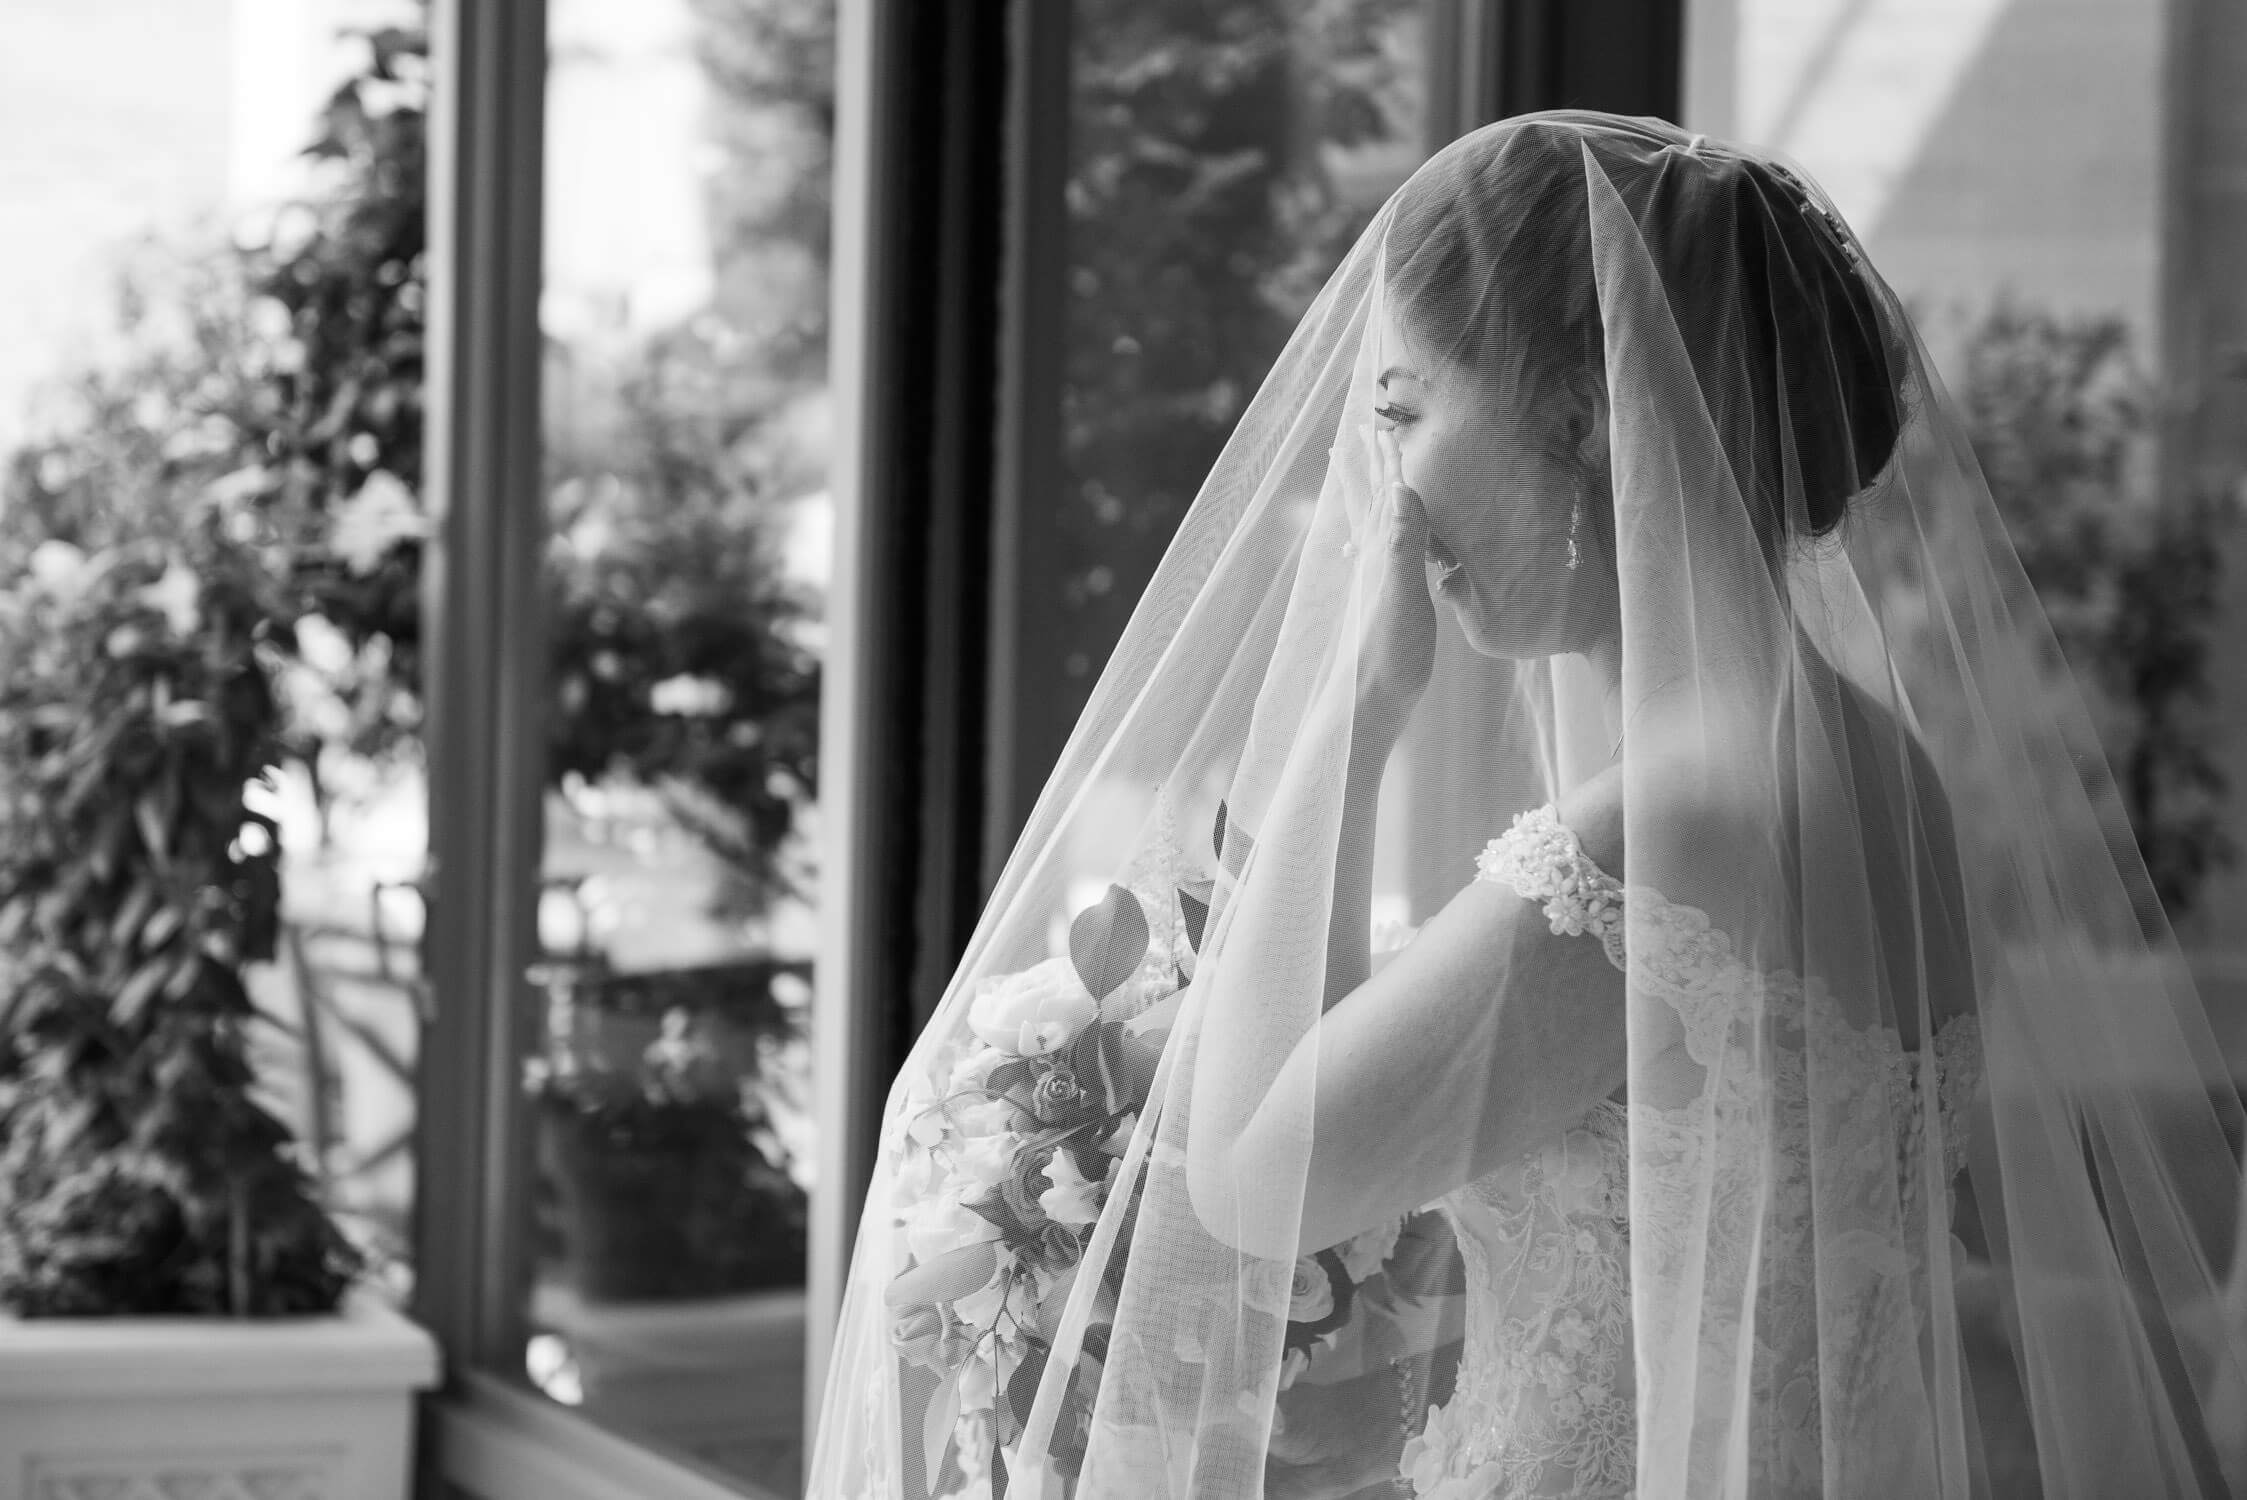 A bride crying at her wedding ceremony at the Ritz